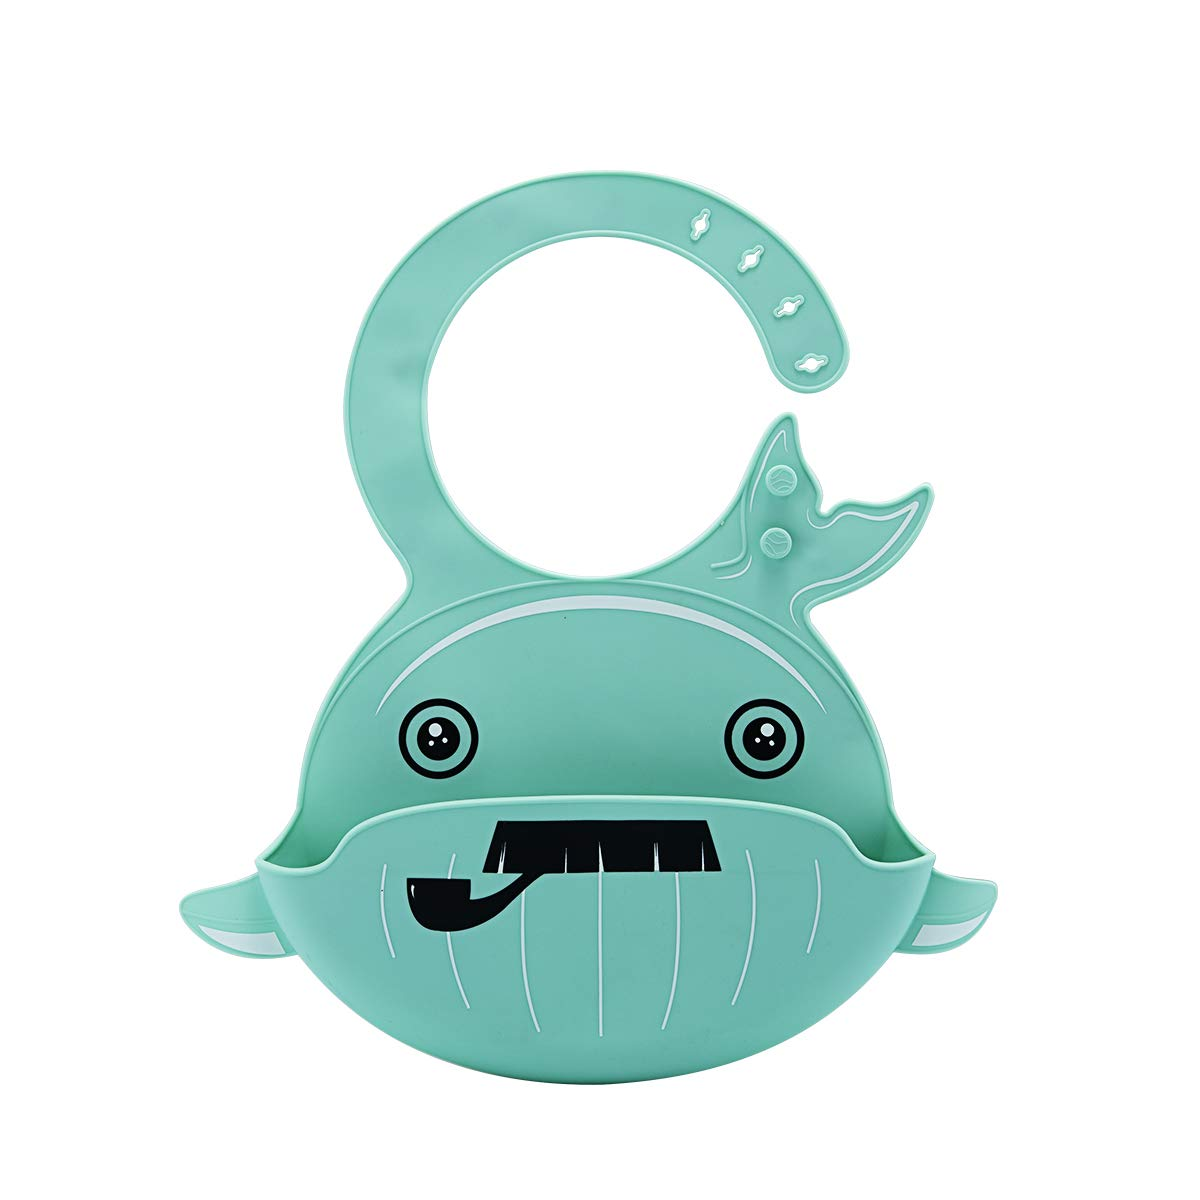 Whale:Green/&Blue 2pcs Silicone Baby Bids Waterproof Feeding Bids for Boys Girls Wipes Clean Easily,Soft,Durable,Food Grade Material Bibs for Infant and Toddler